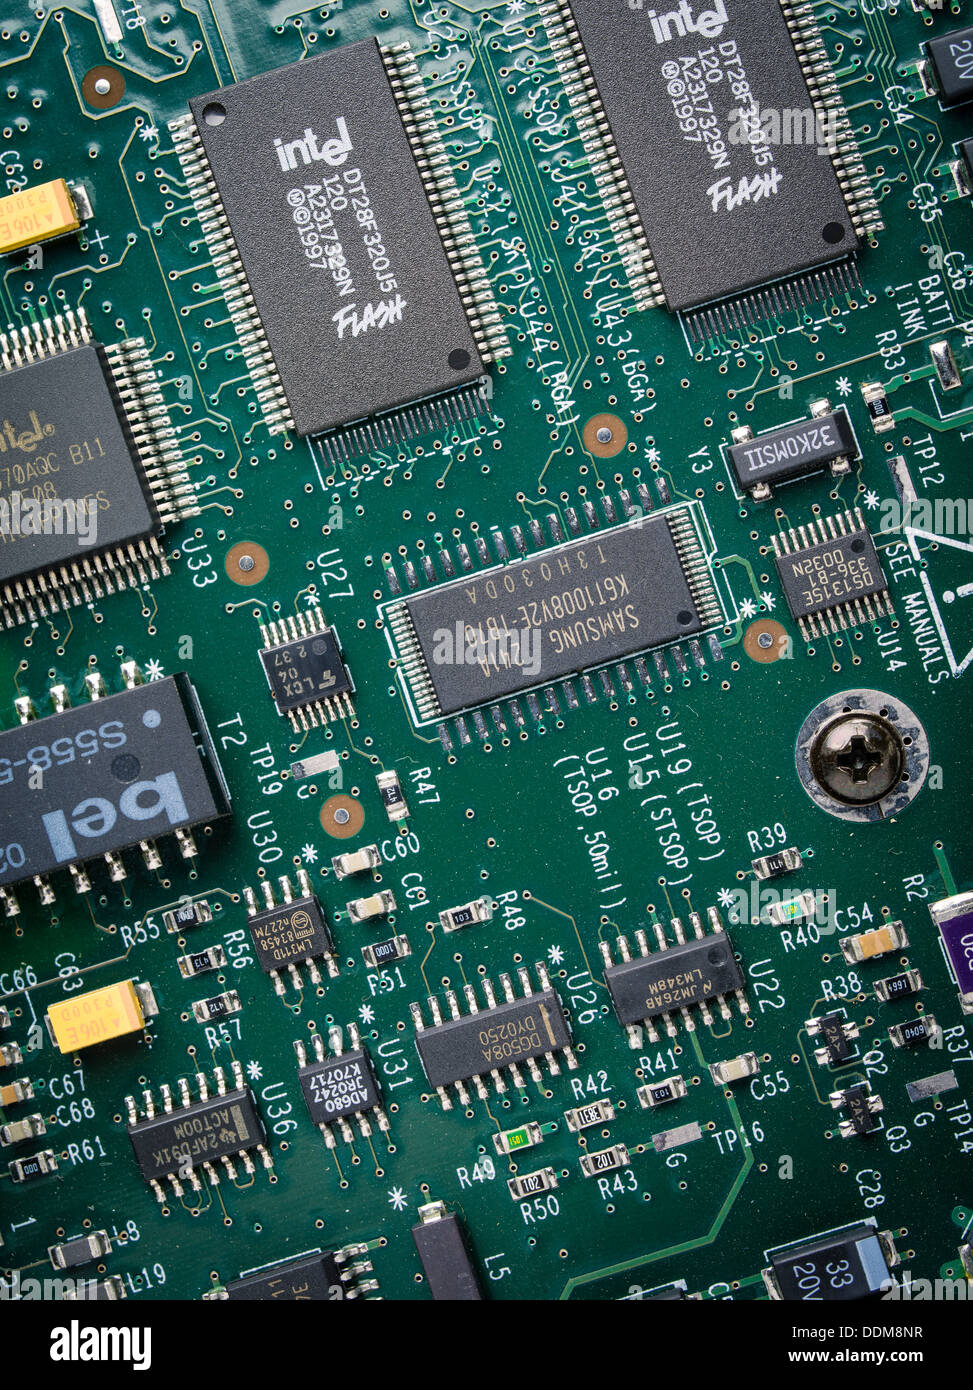 Circuit Board Stock Photos Images Alamy Microchips In Old Printed Photo Intel Microchip Flash Memory Image